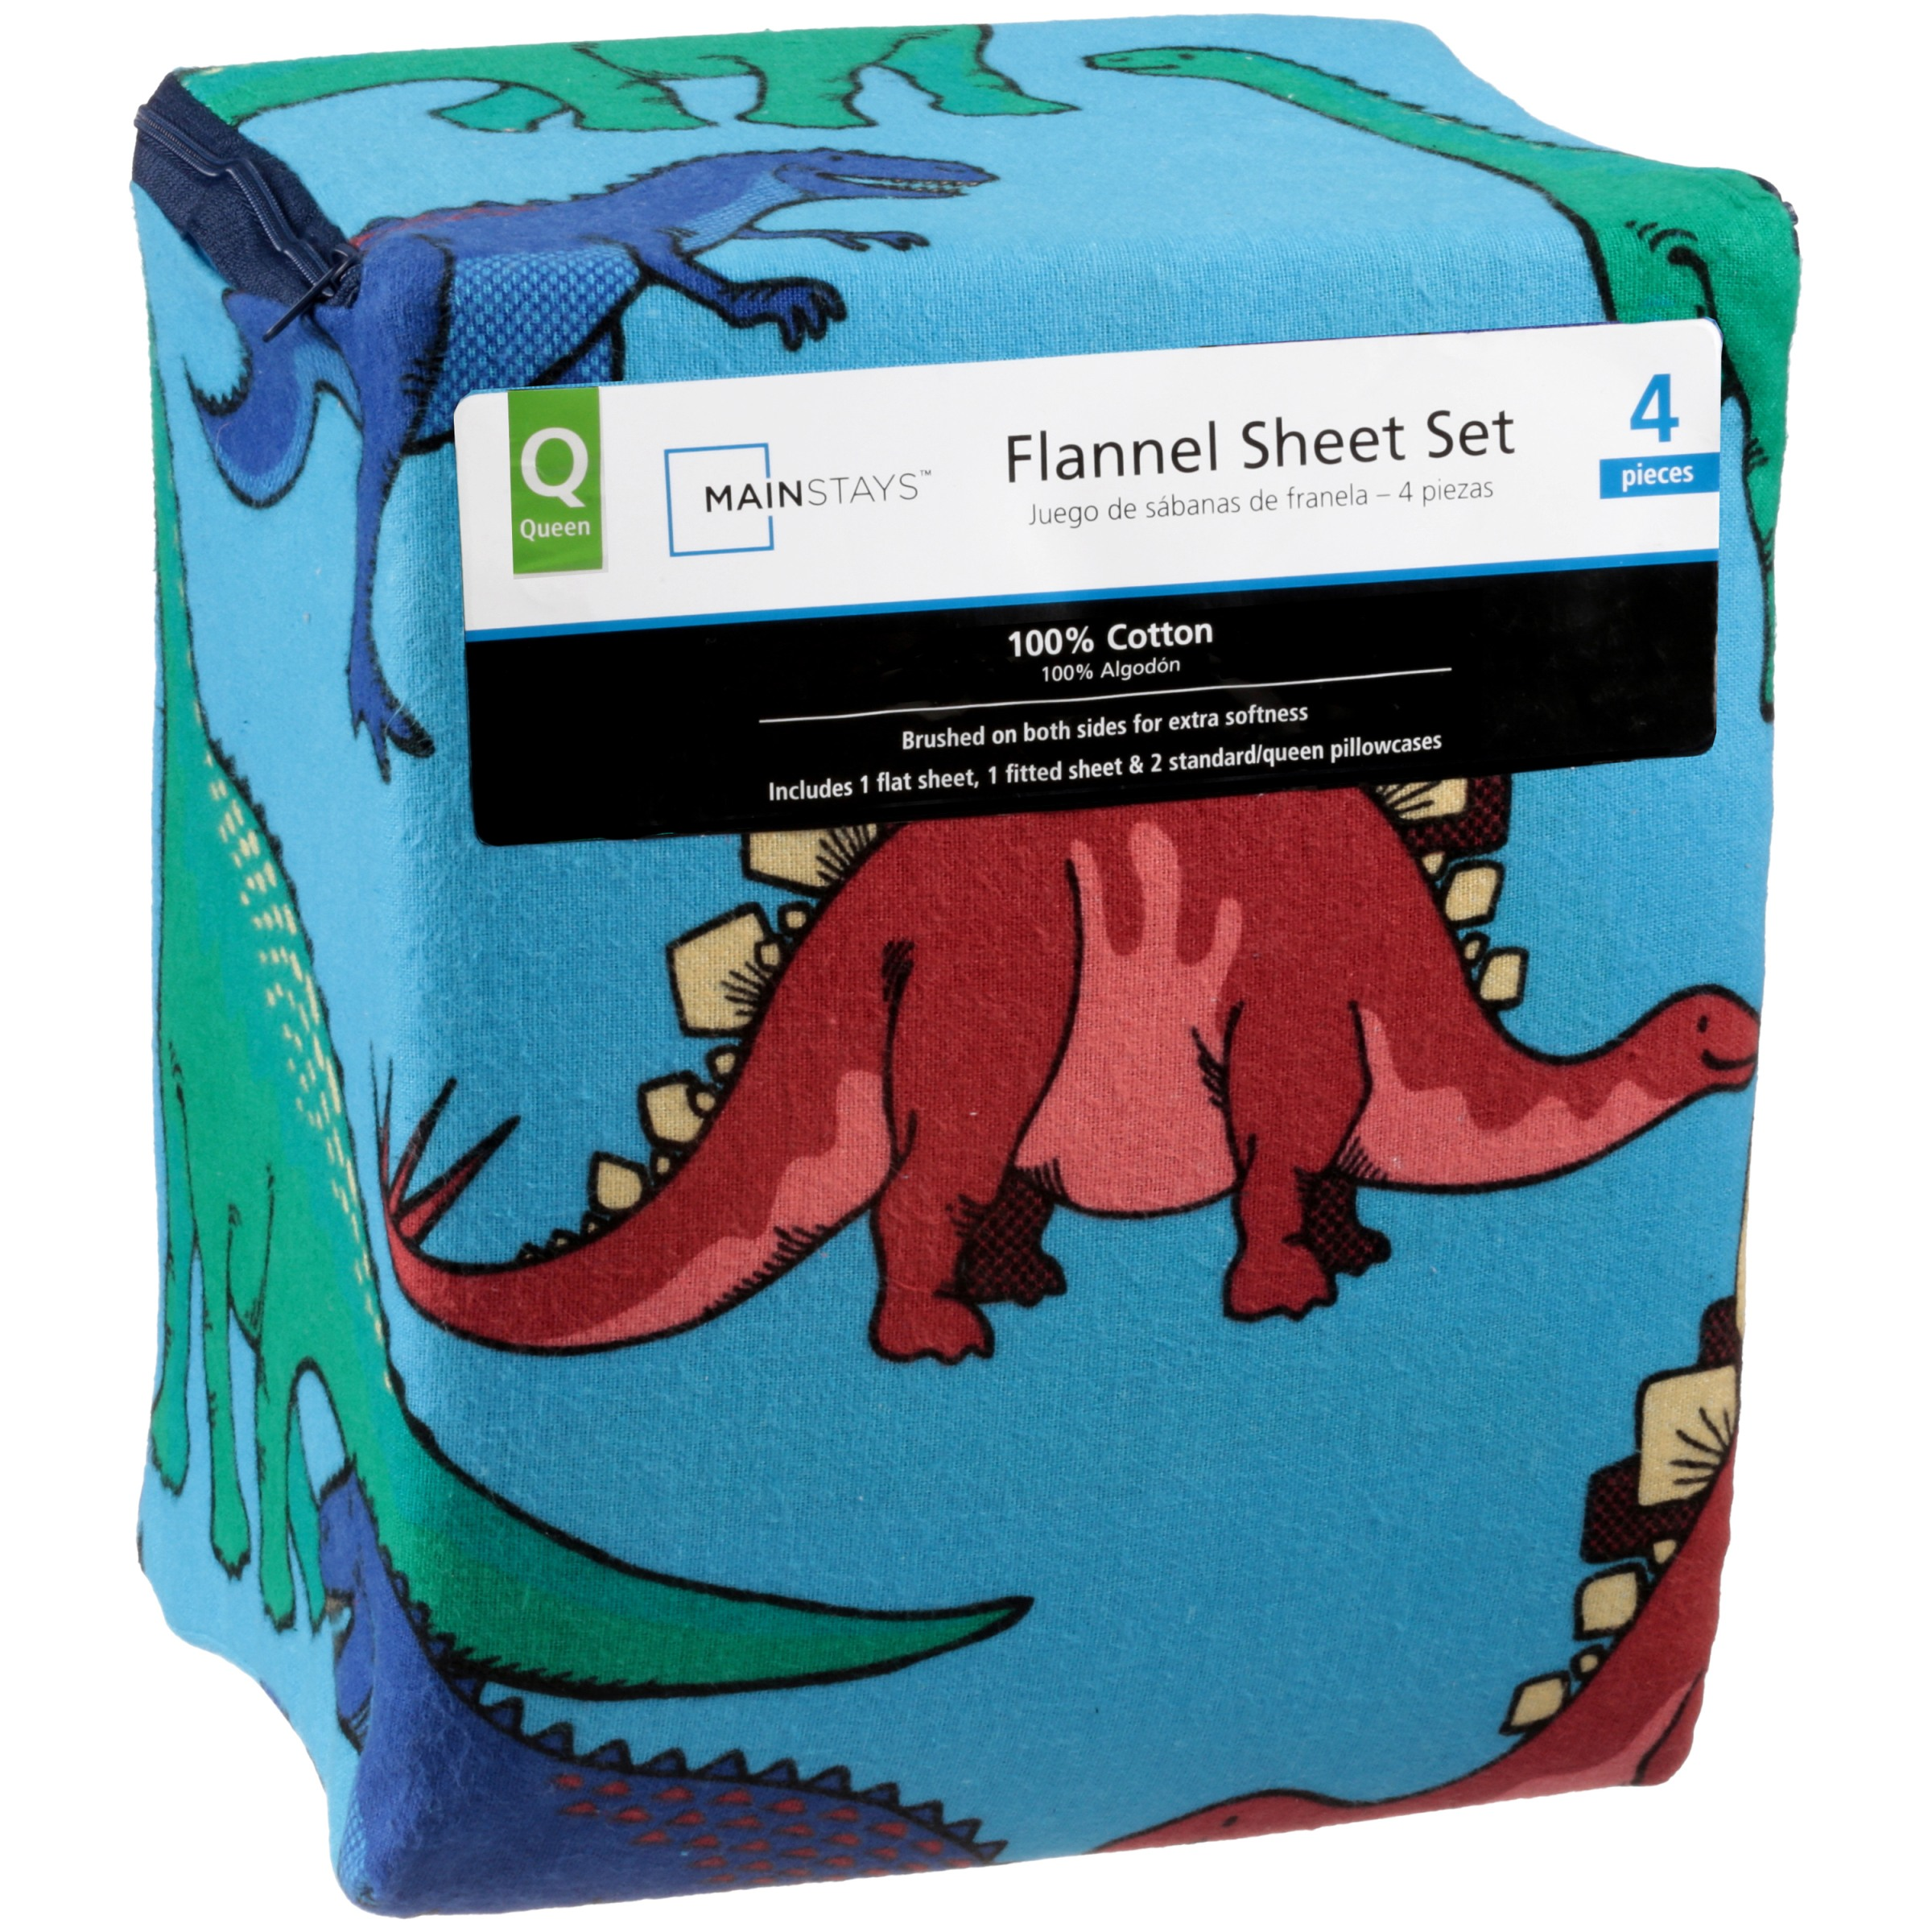 Dinosaur Sheets Full Related Post Flannel